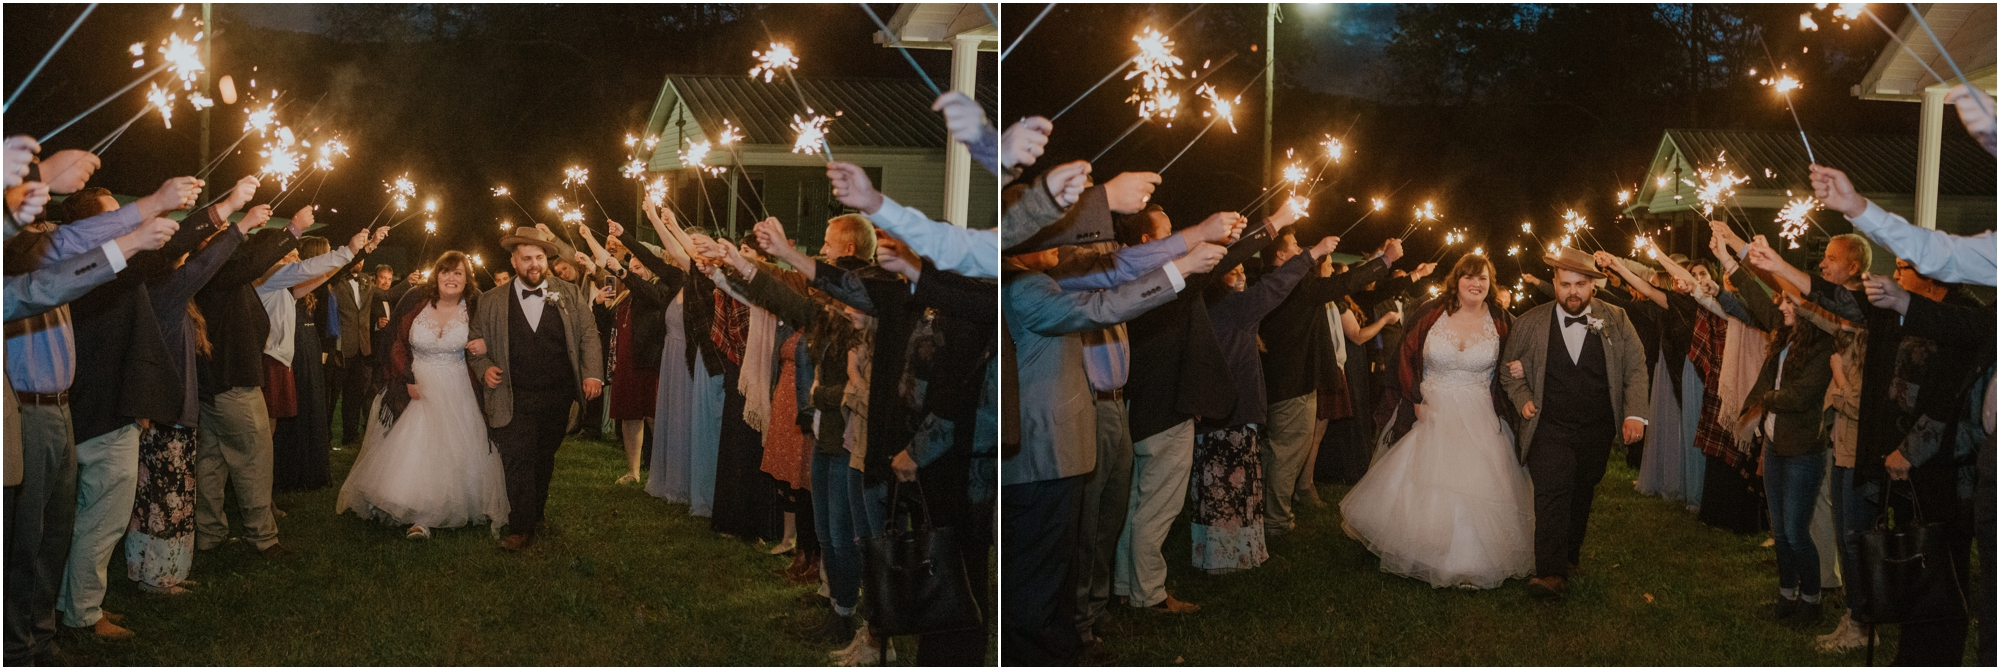 caryville-robbins-middle-tennessee-intimate-cozy-fall-navy-rustic-backyard-wedding_0139.jpg